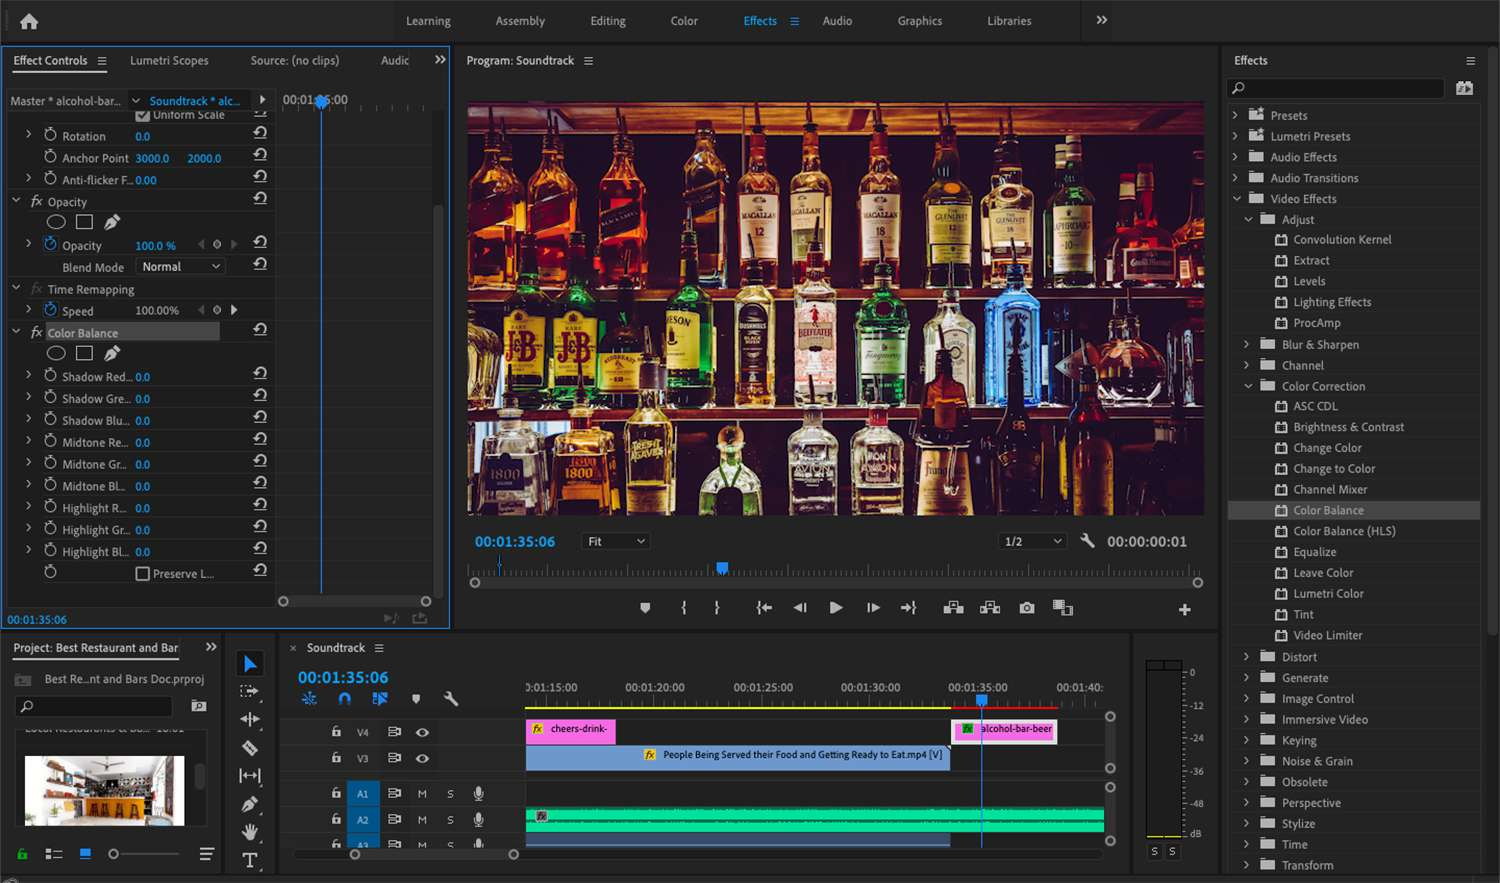 Adobe Premiere Pro Cc 13 1 2 Review Advanced Video Editor With Effects Lumetri Color Grading And More